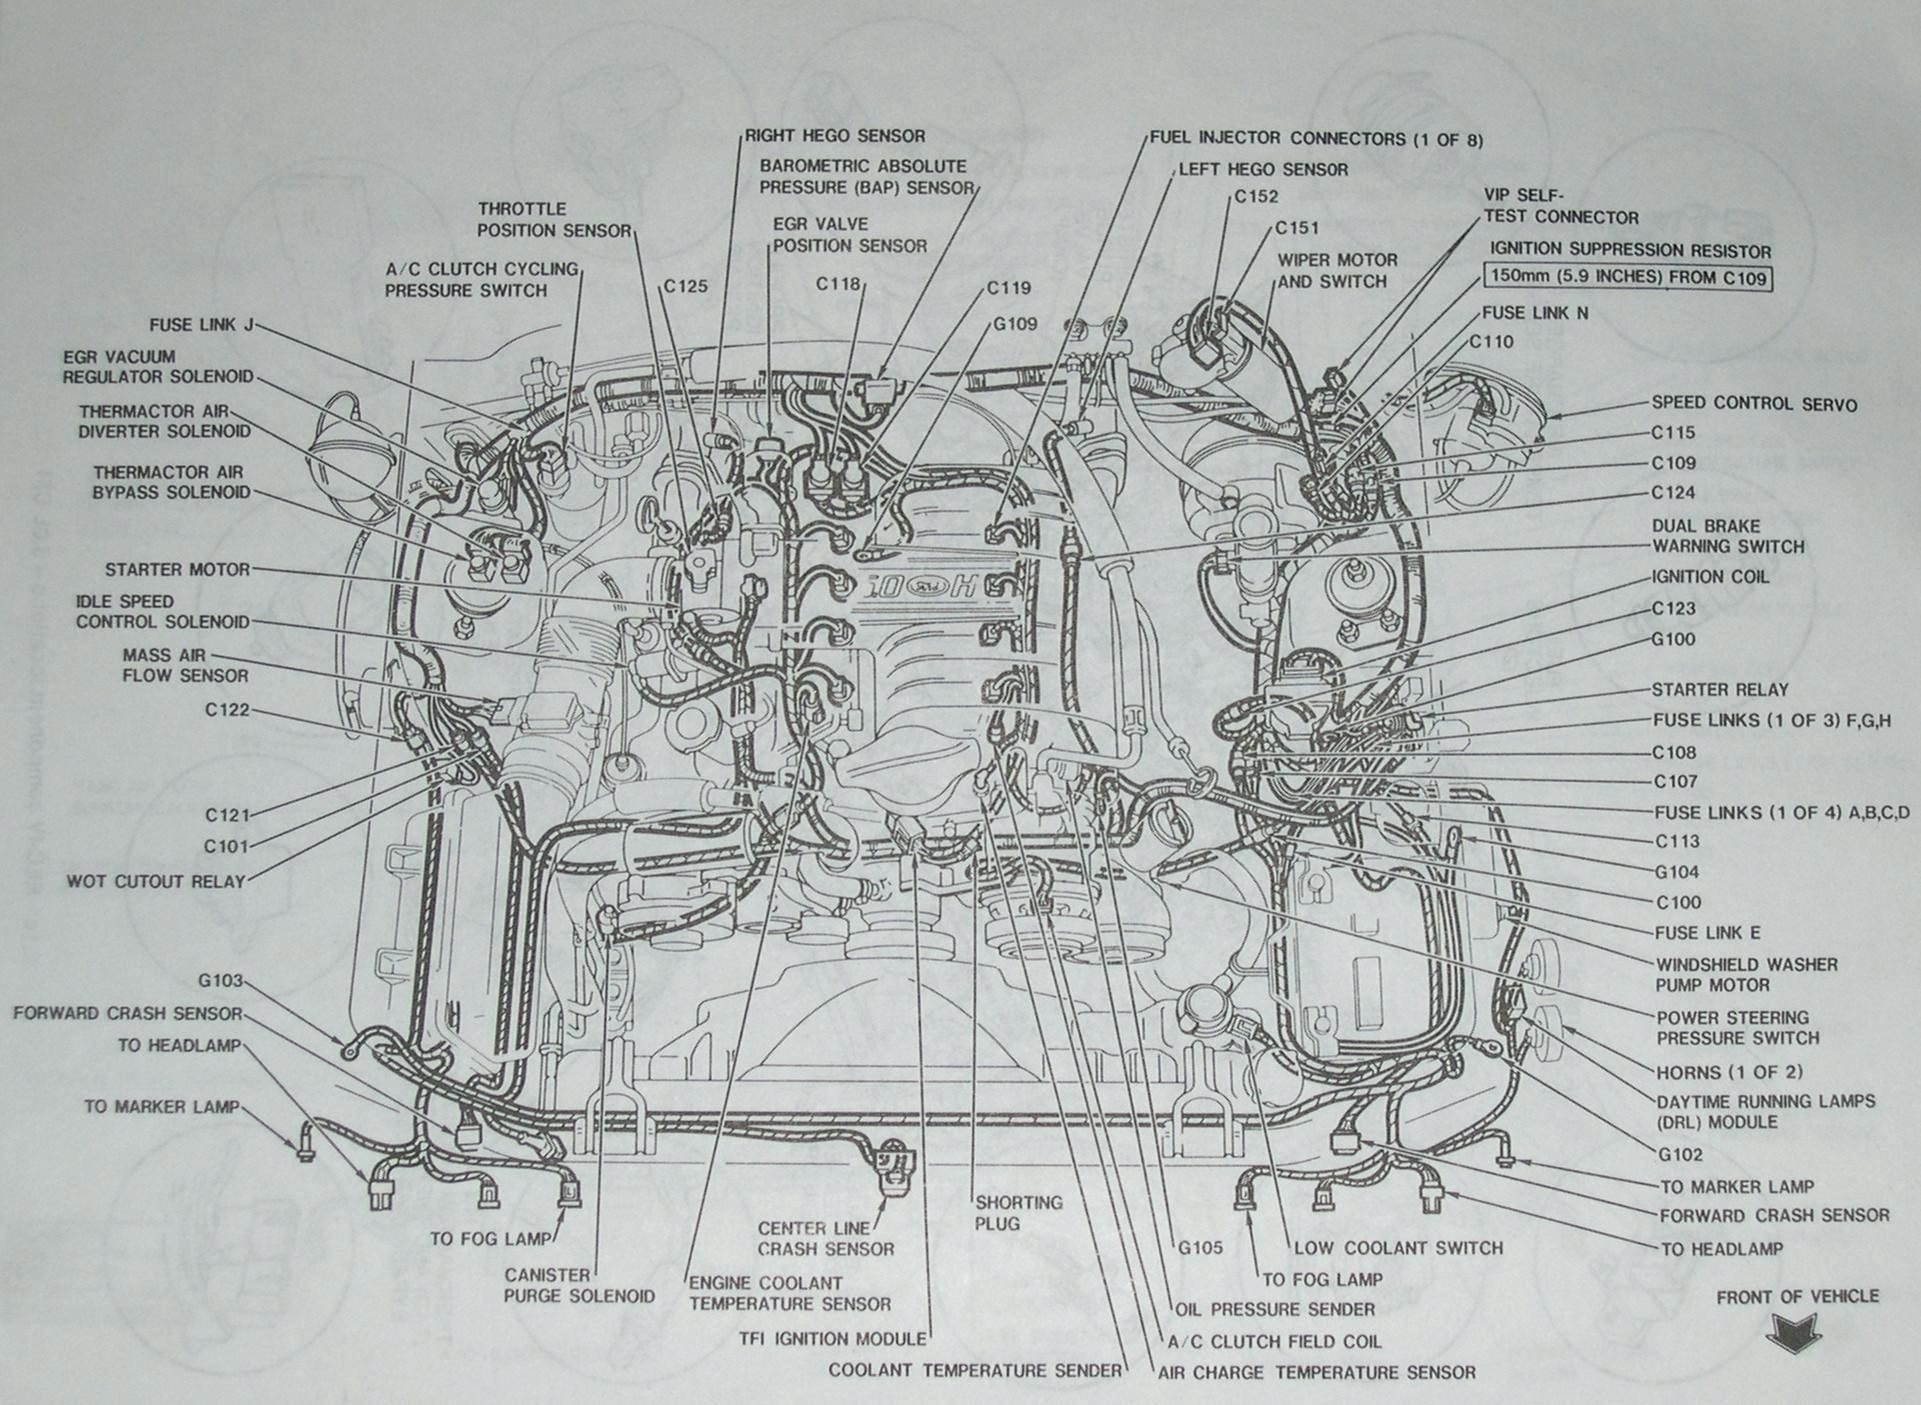 hight resolution of ford mustang gt500 engine ford circuit diagrams wiring diagram show 1969 ford mustang engine wiring diagram